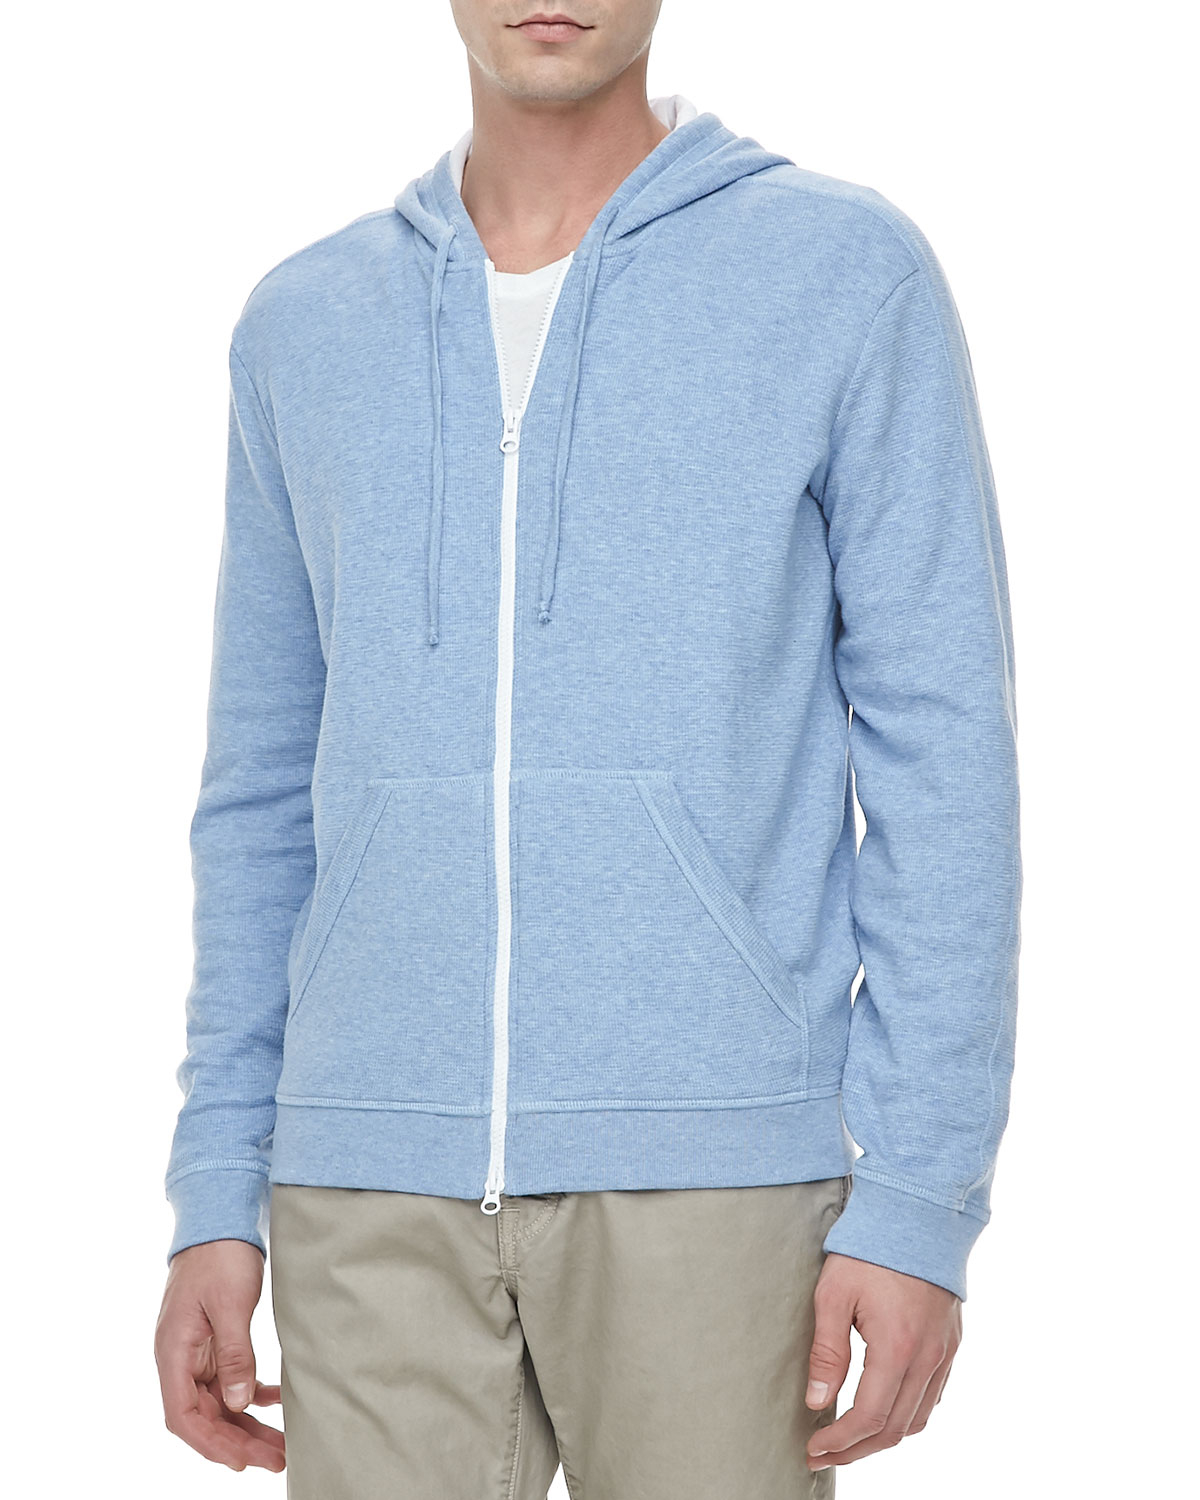 Images of Light Blue Hoodie Mens - Reikian